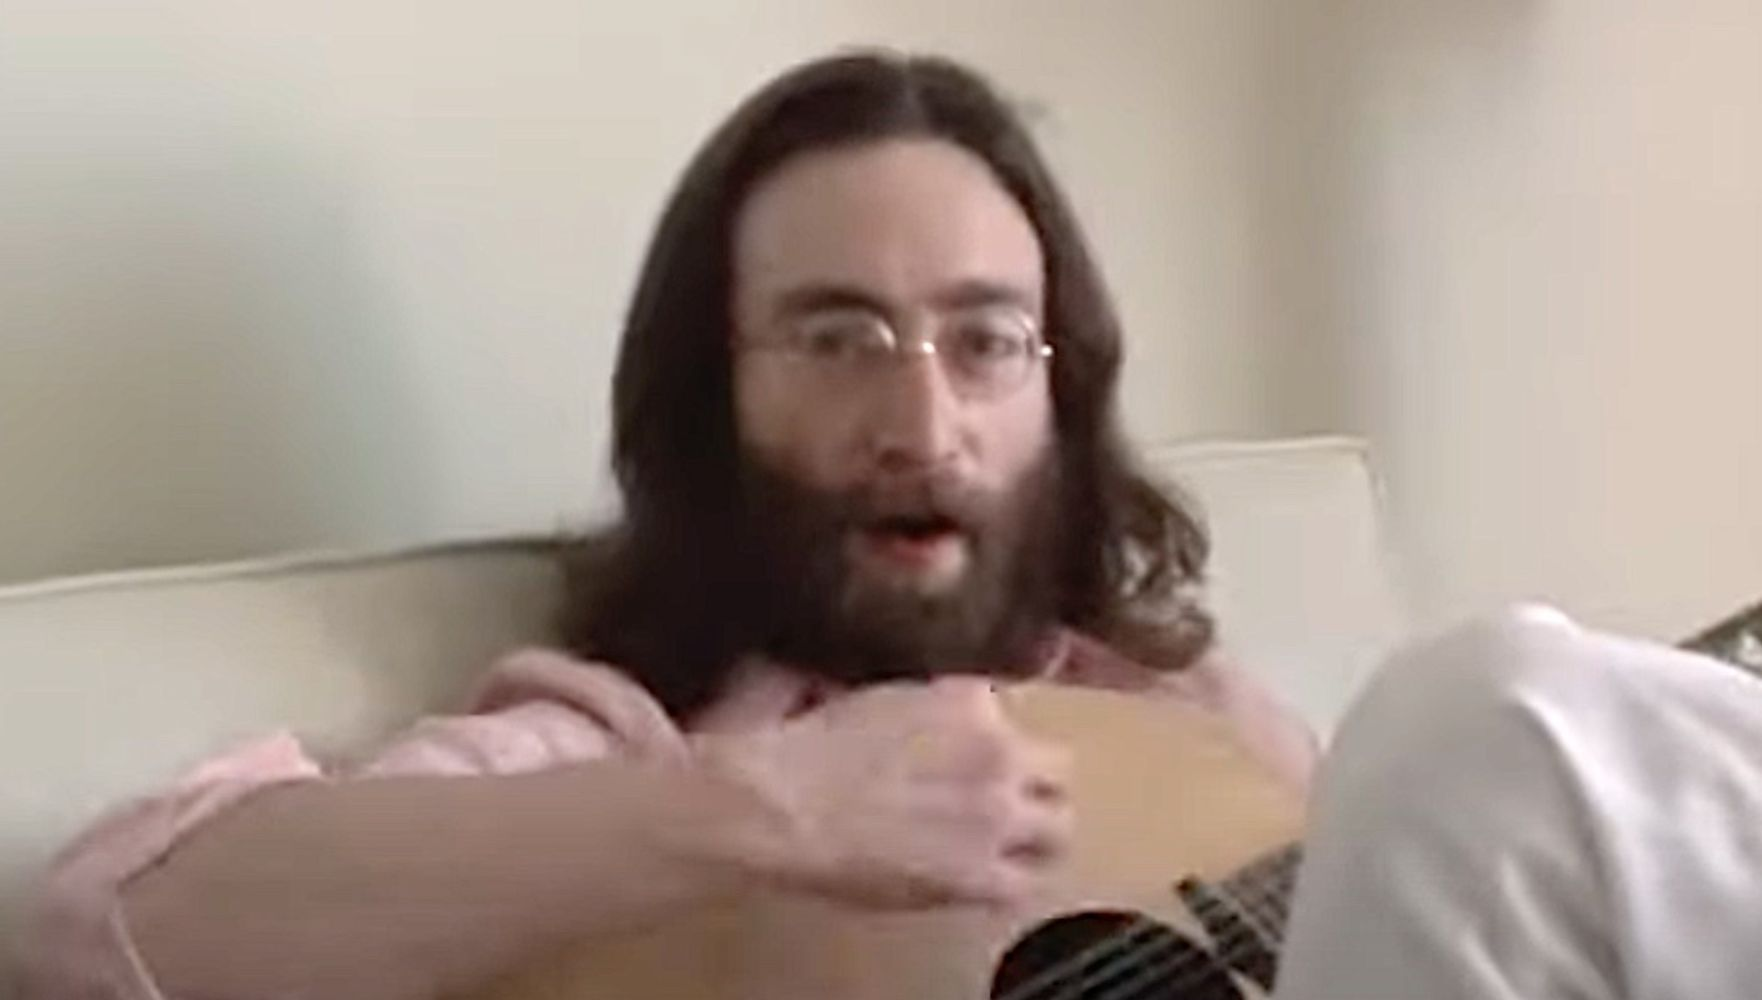 Lost Footage Shows John Lennon Creating One Of His Most Iconic Songs